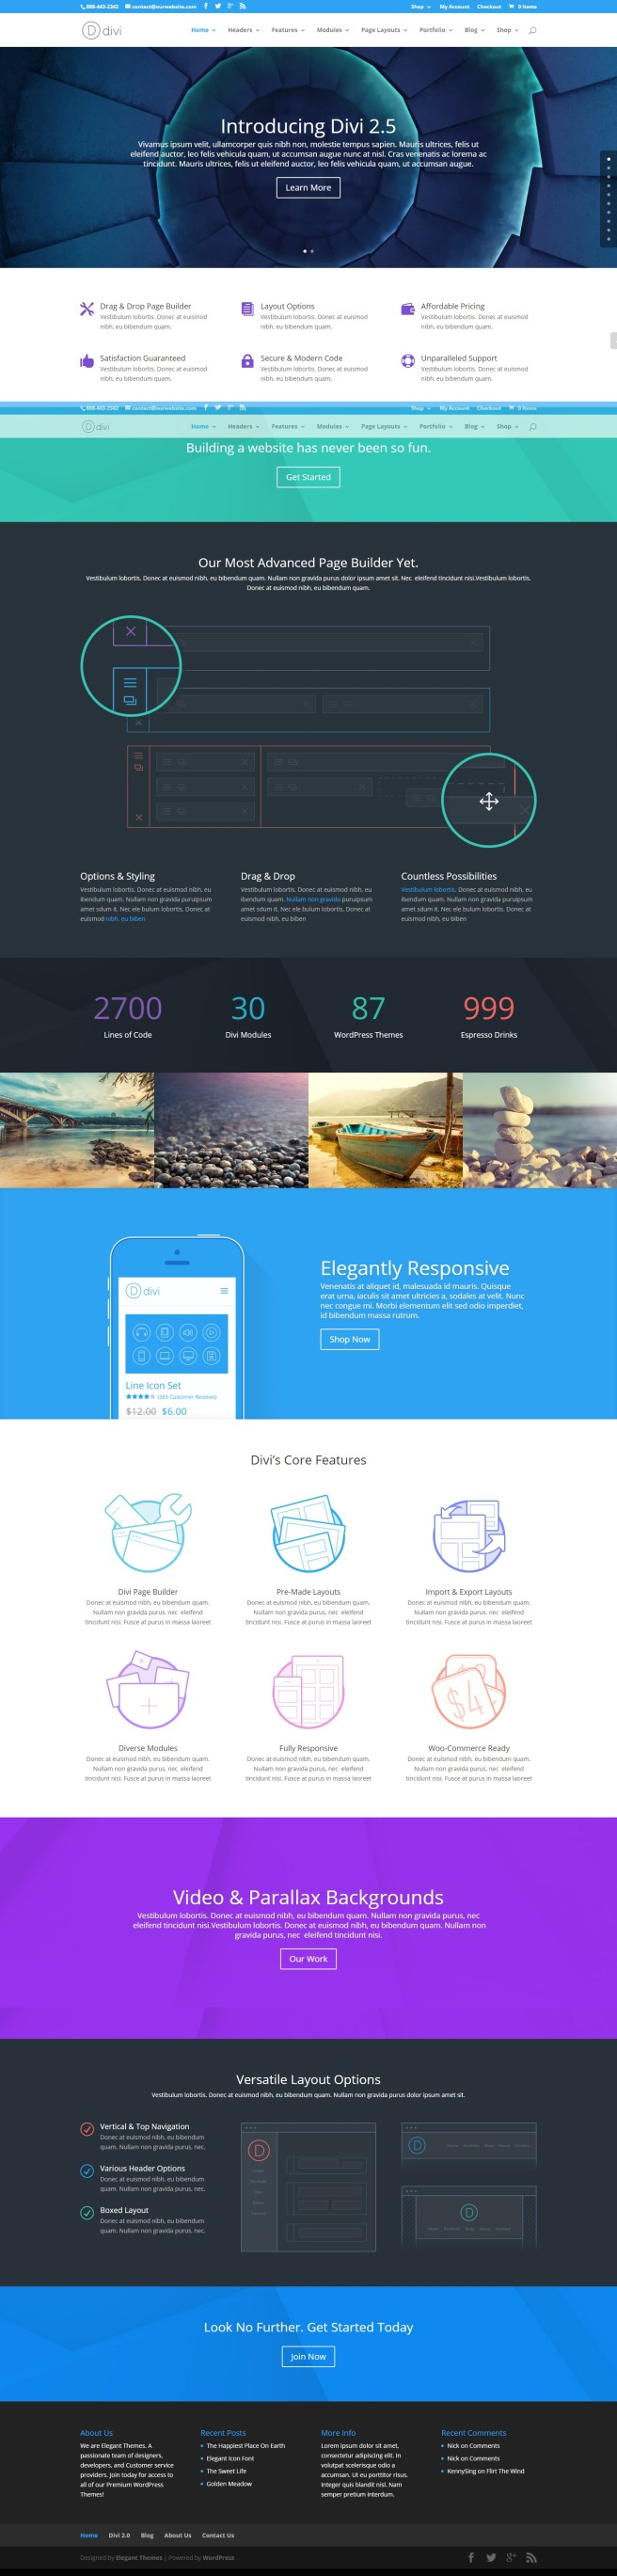 powerful wordpress theme divi